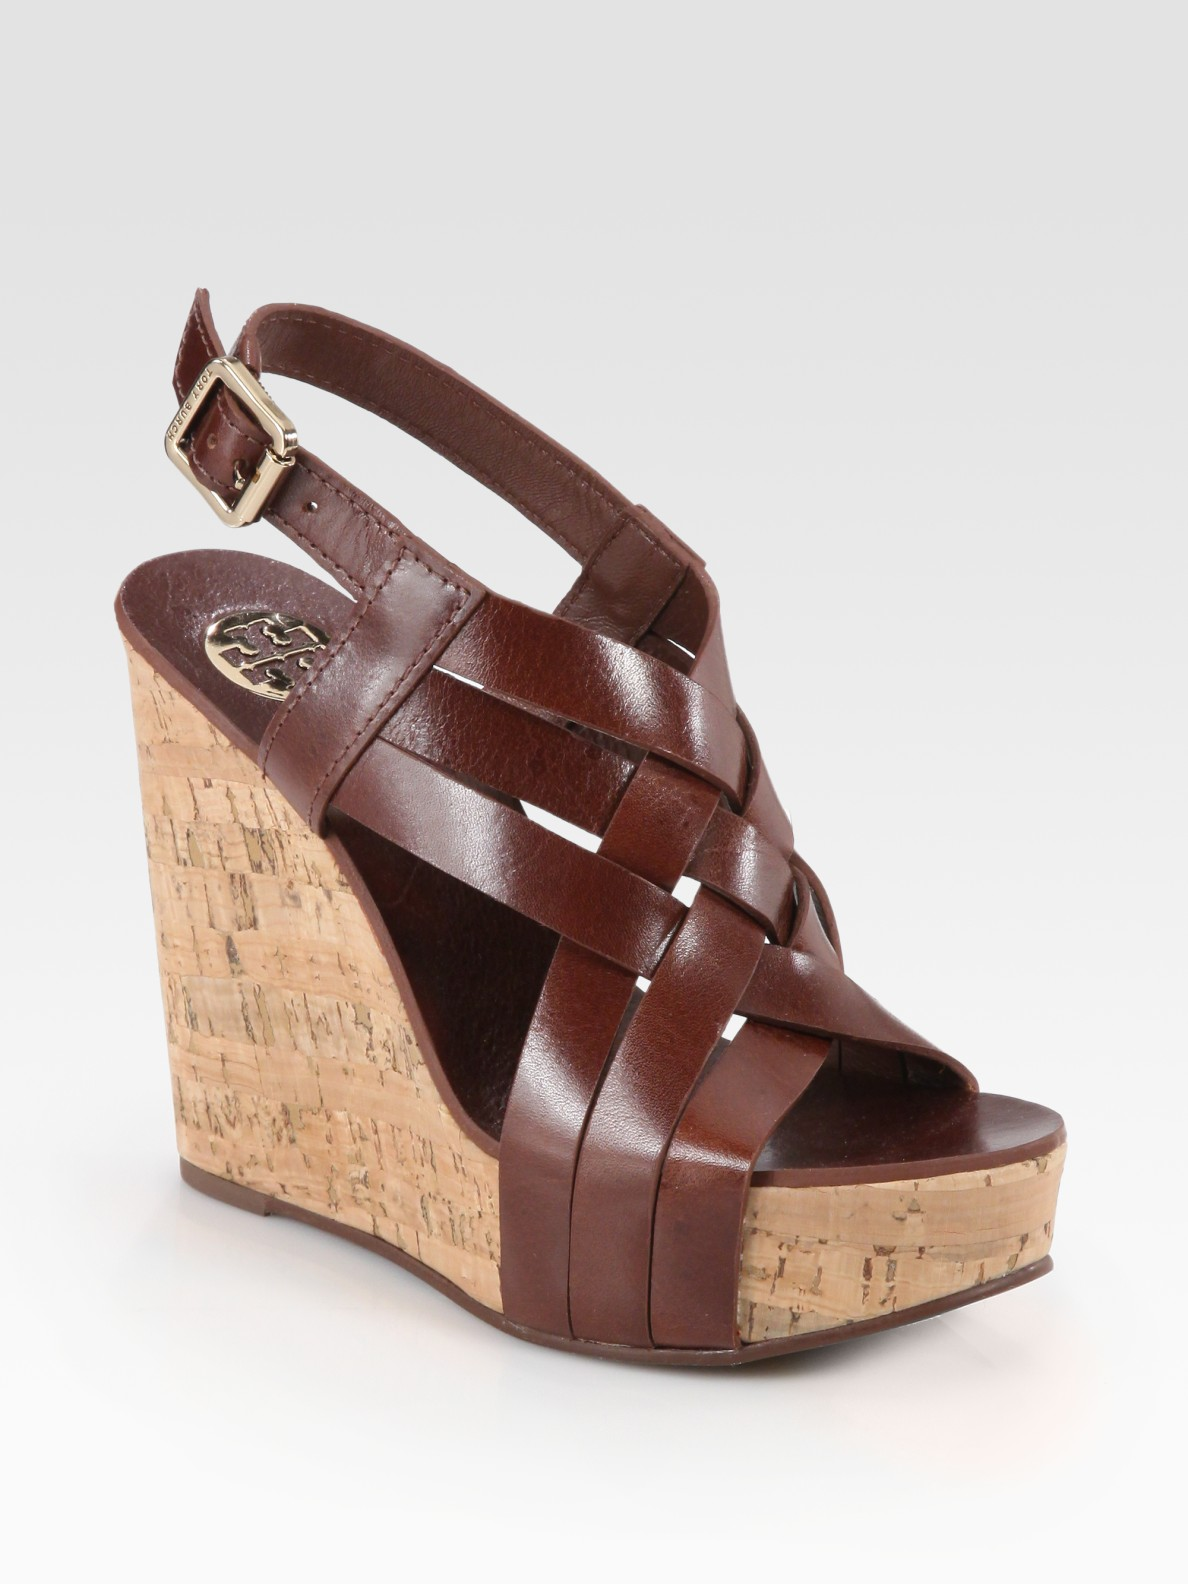 Lyst Tory Burch Ace Slingback Leather And Cork Wedge